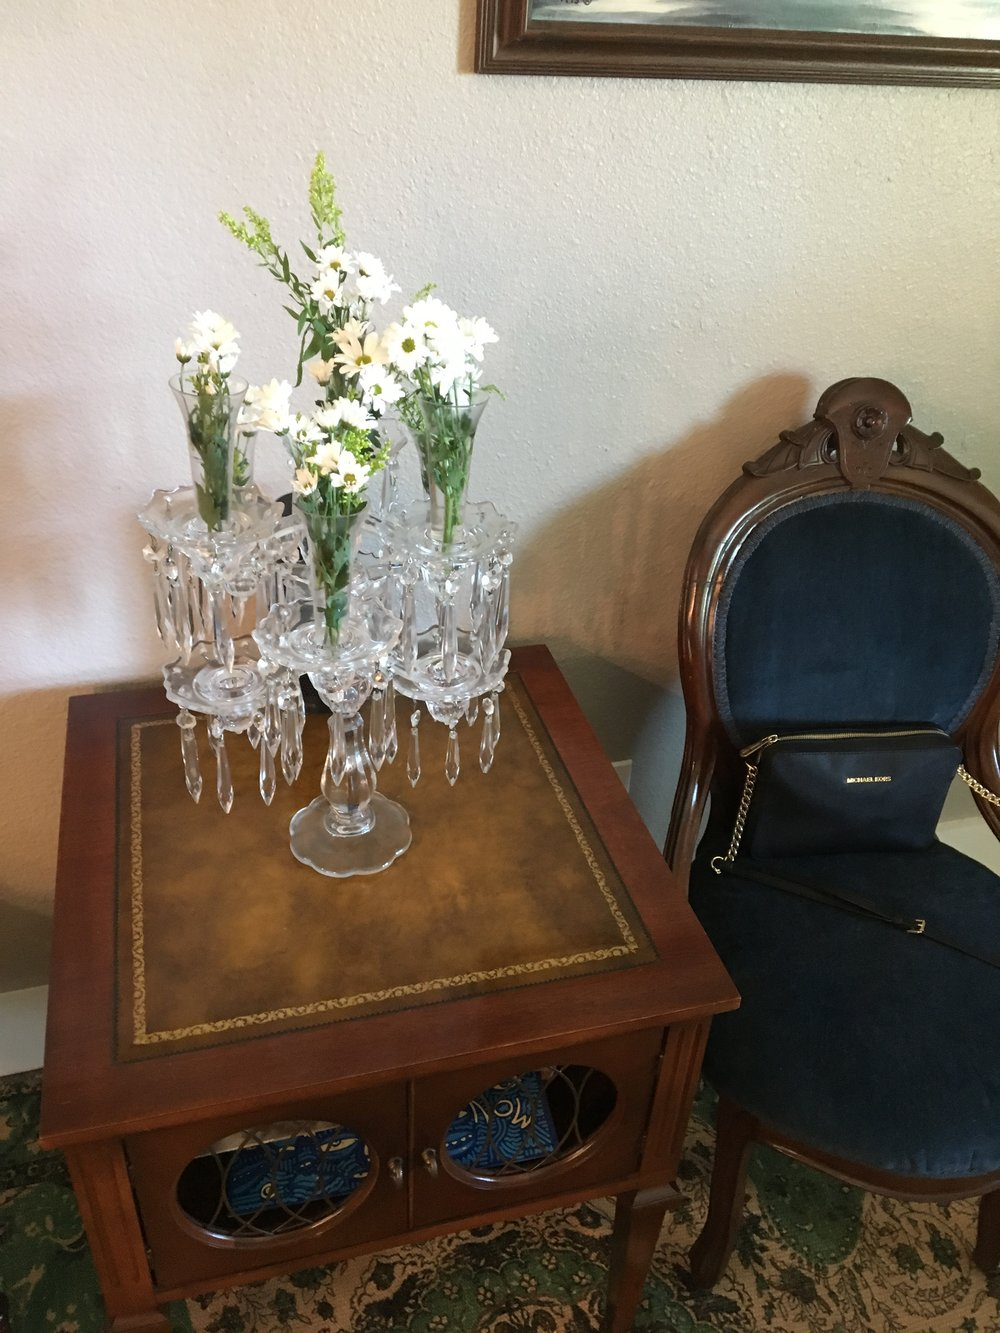 One of my favorite decorative elements were these stunning crystal candelabras my mother-in-law brought over. We will inherit two of these from Baby Marisa Patricia's other namesake, TJ's grandmother. the fresh flowers were a Parisian touch.